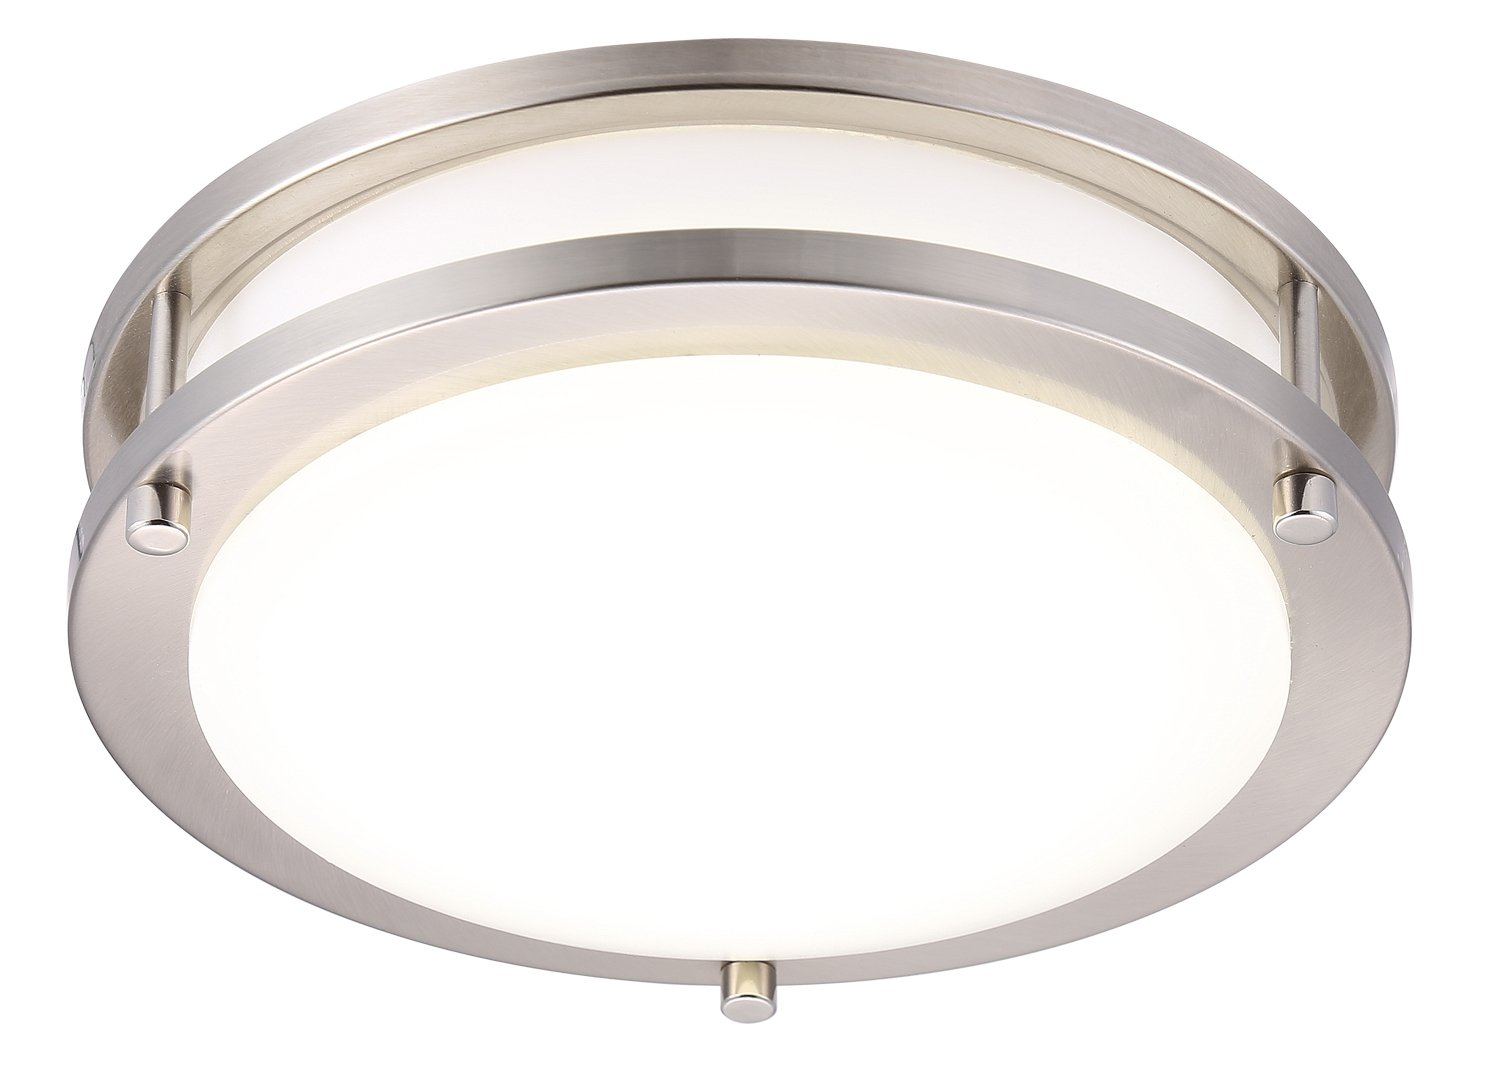 Cloudy Bay LED Flush Mount Ceiling Light,10 inch,17W(120W Equivalent) Dimmable 1150lm,4000K Cool White,Brushed Nickel Round Lighting Fixture for Kitchen,Hallway,Bathroom,Stairwell